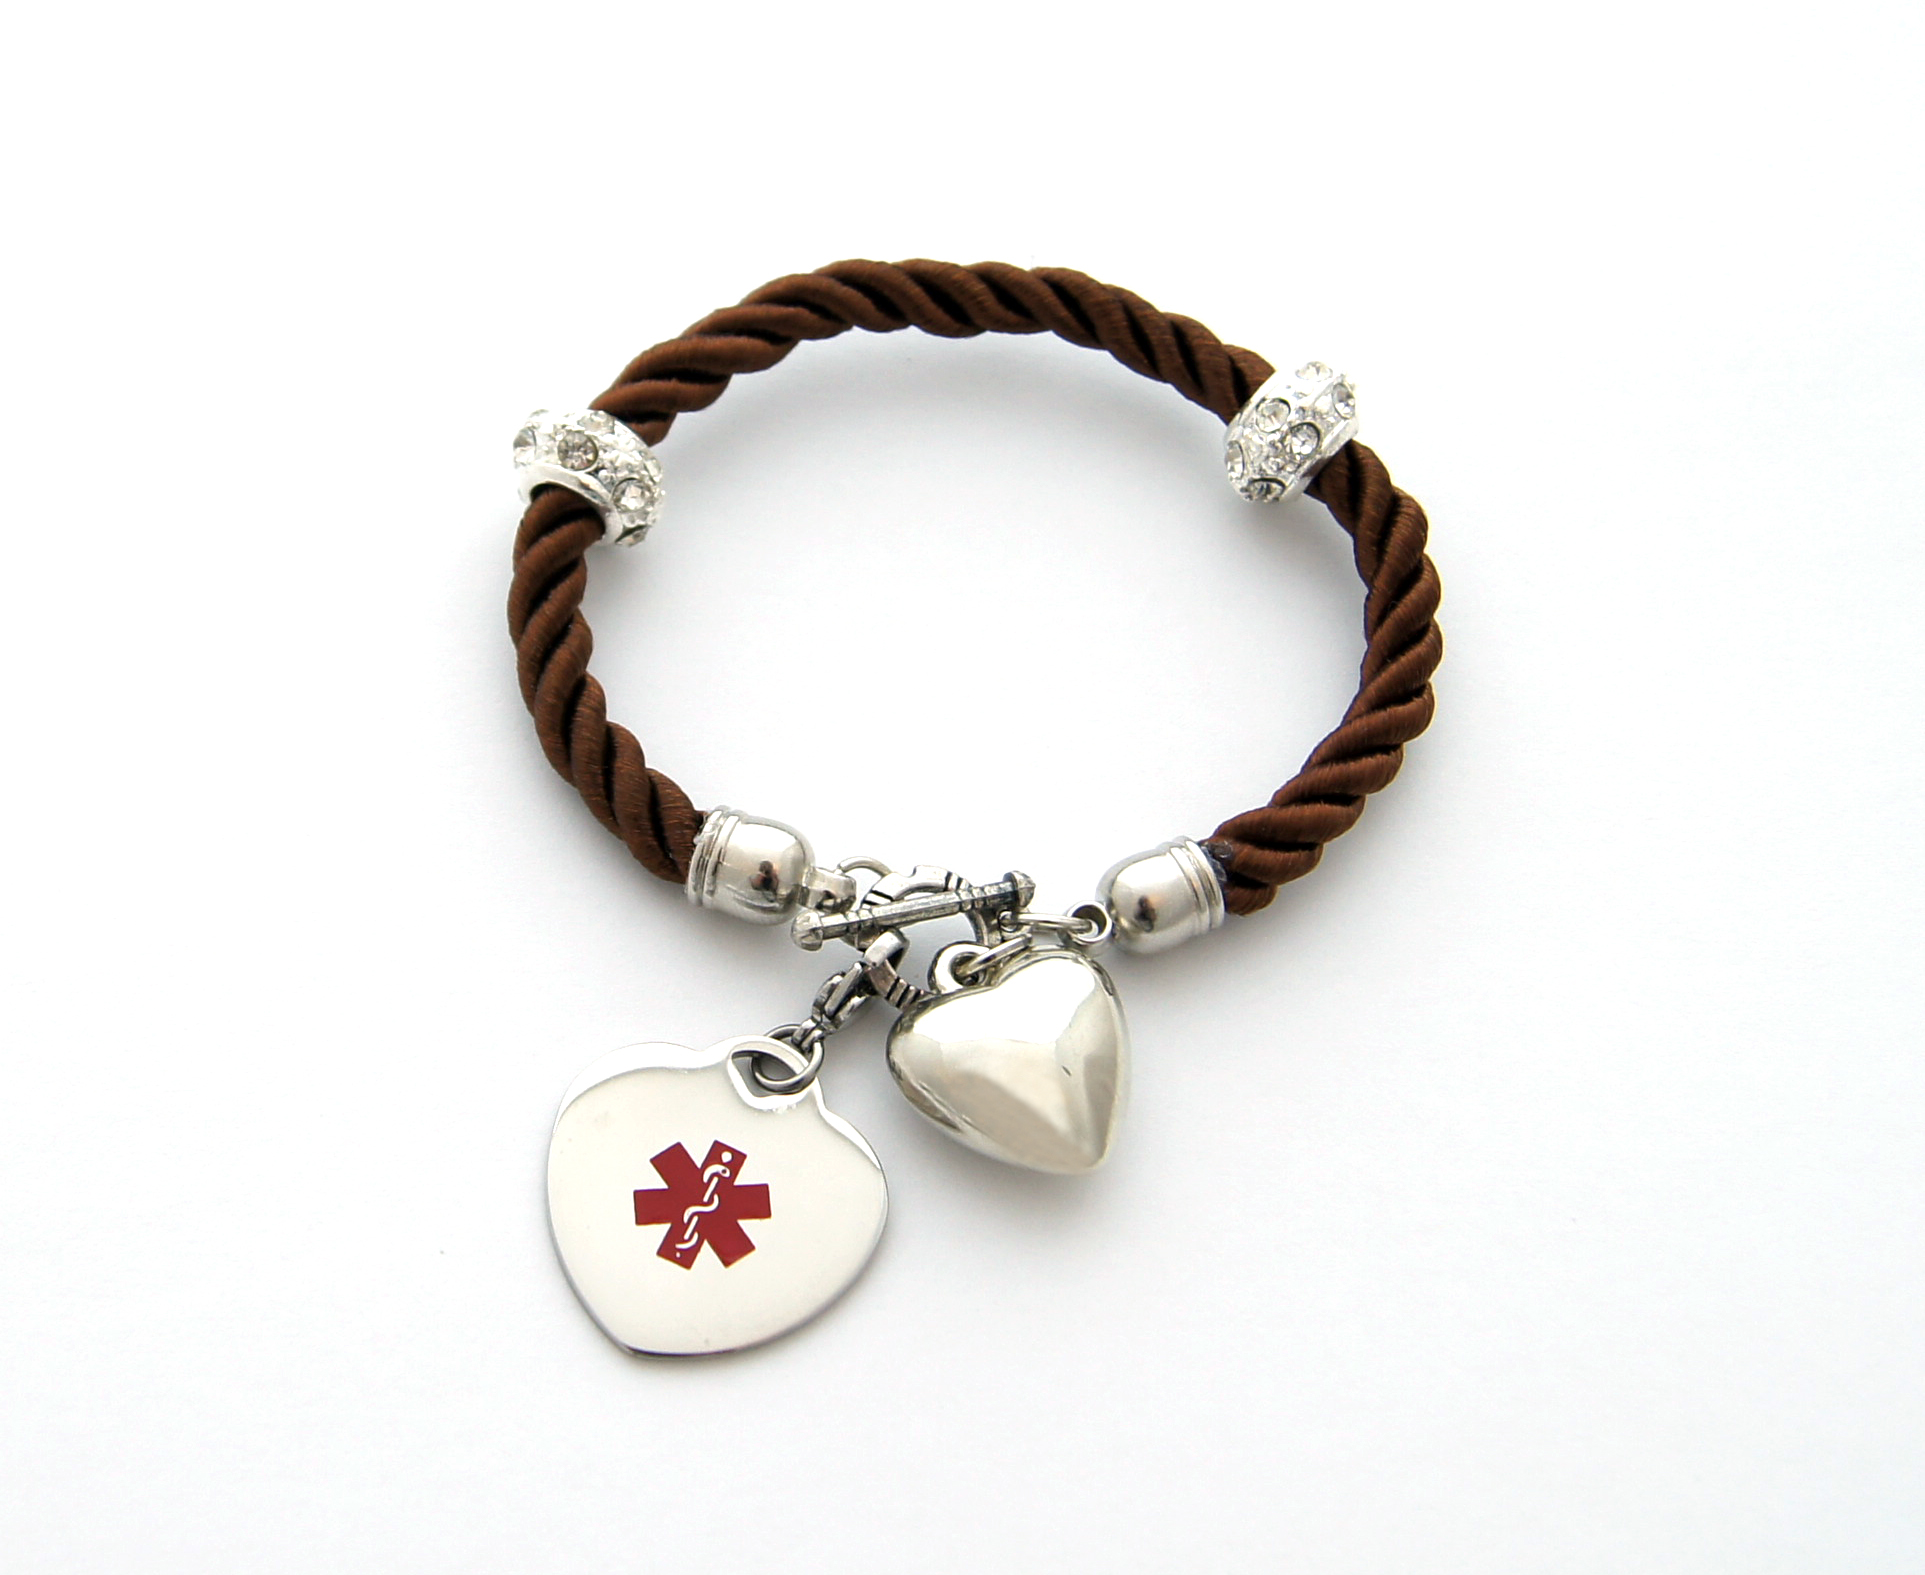 Brown Twist Rope Bracelet with Puff Heart Charm - Medical ID